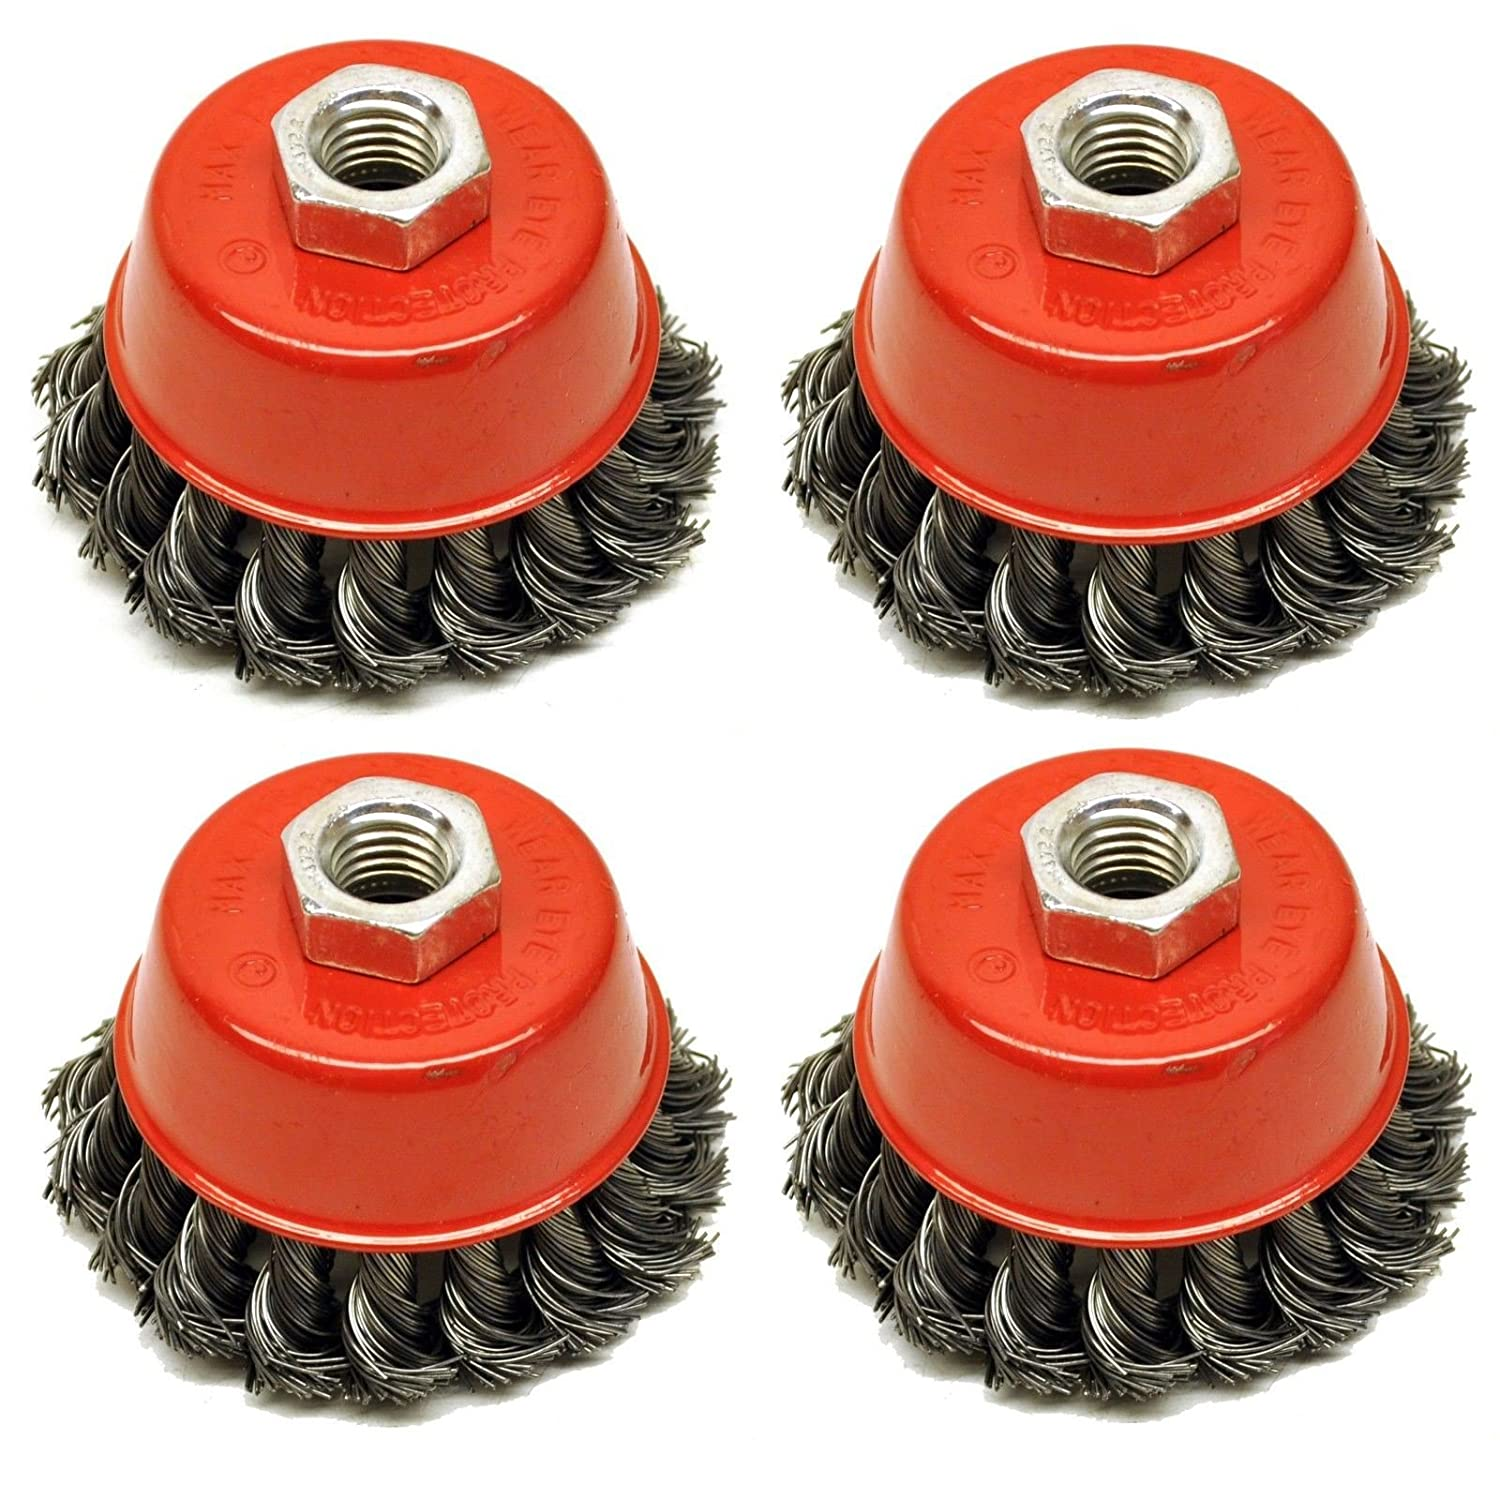 Wire Cup Brush Wheel 3' for 4-1/2' 115mm Angle Grinder Twist Knot 4 Pack AU026 AB Tools